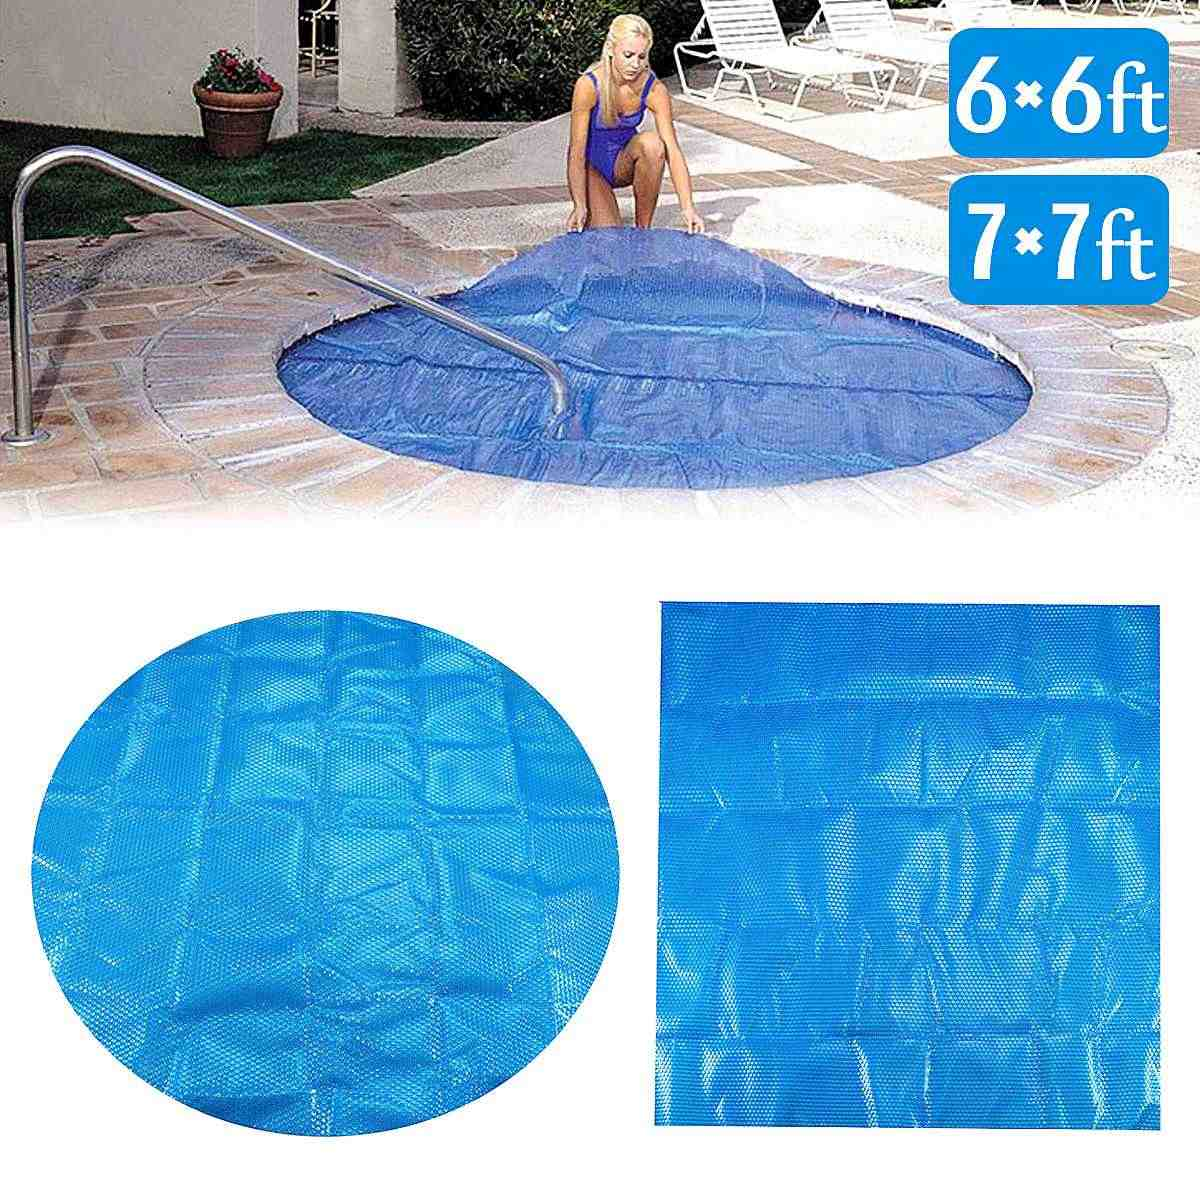 6ft/7ft Round/Square Swimming Pool Spa Hot Tub Cover 400m ...